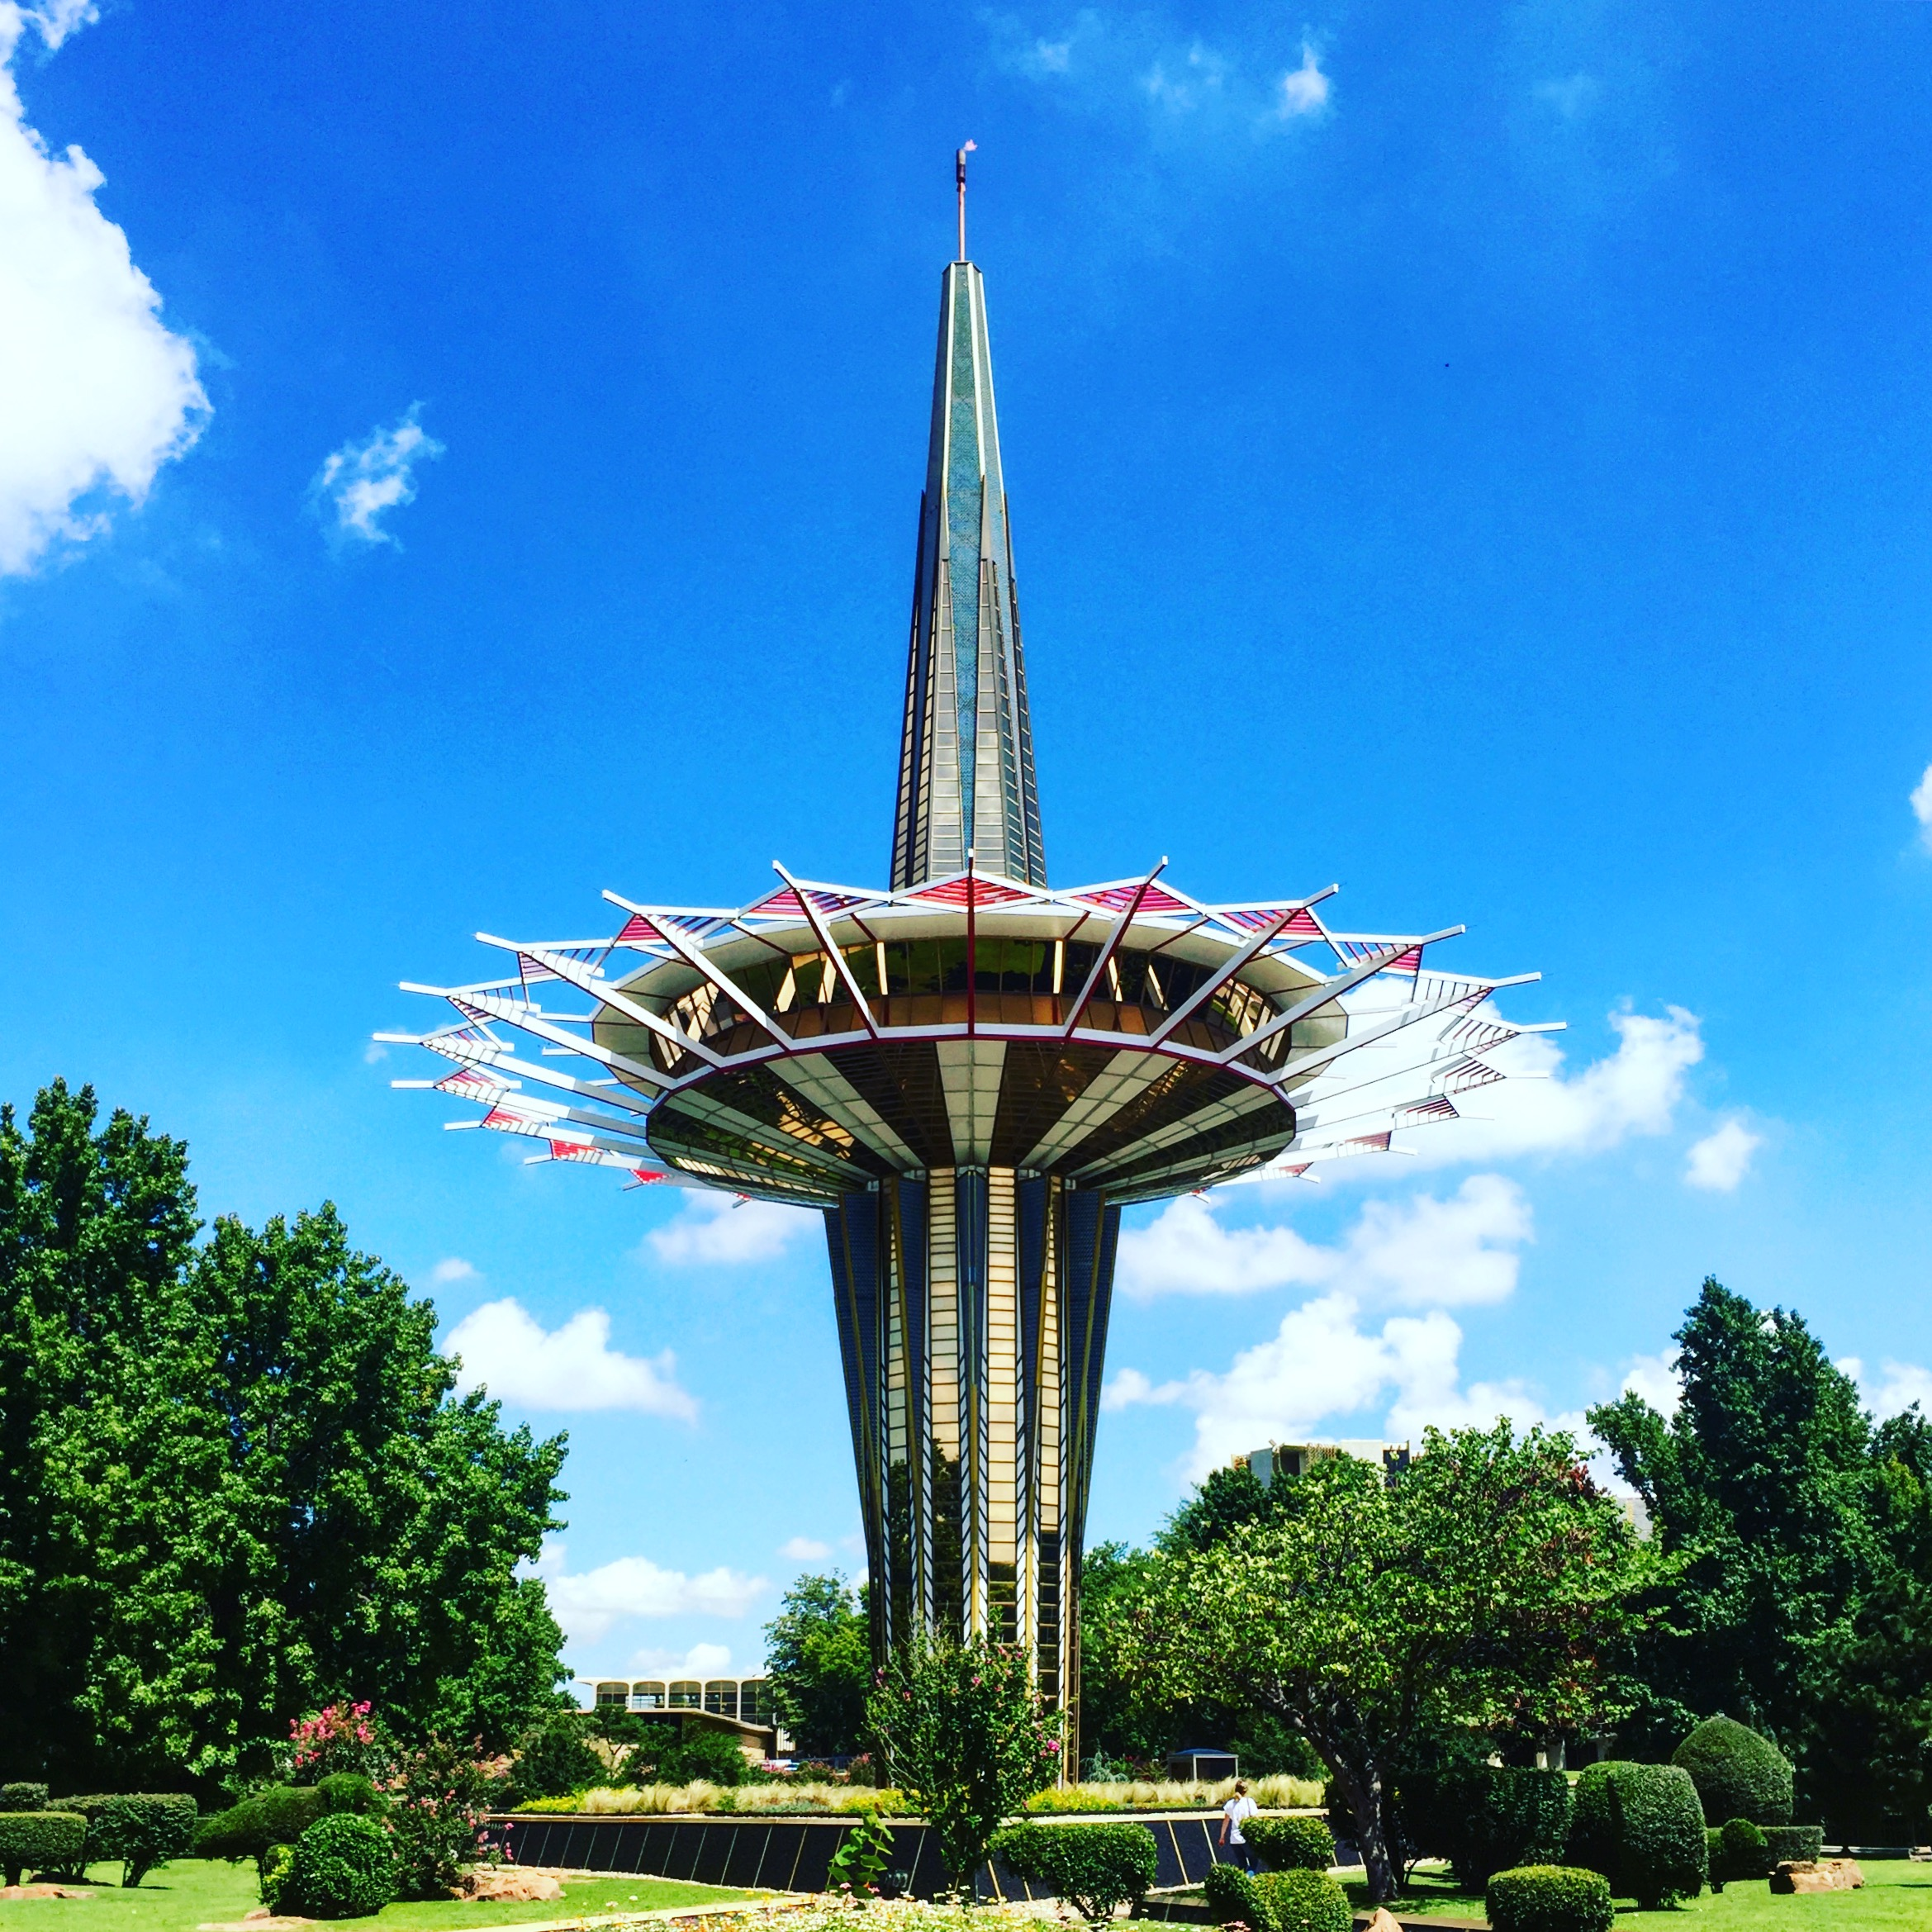 The oddly futuristic yet referential architecture of Oral Roberts University.